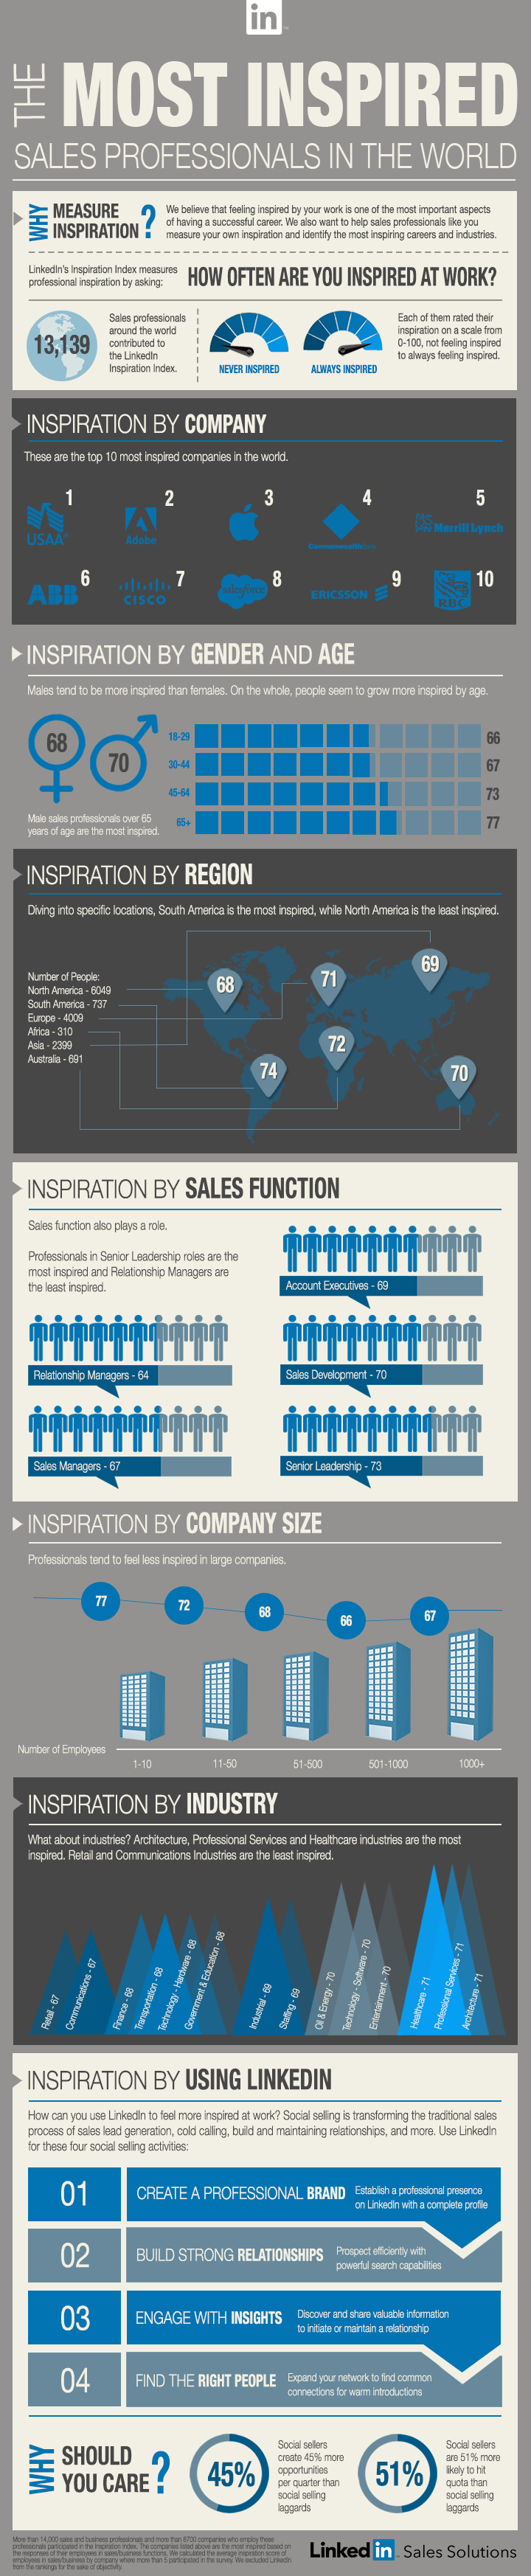 linkedin-inspiration-infographic-FINAL.png